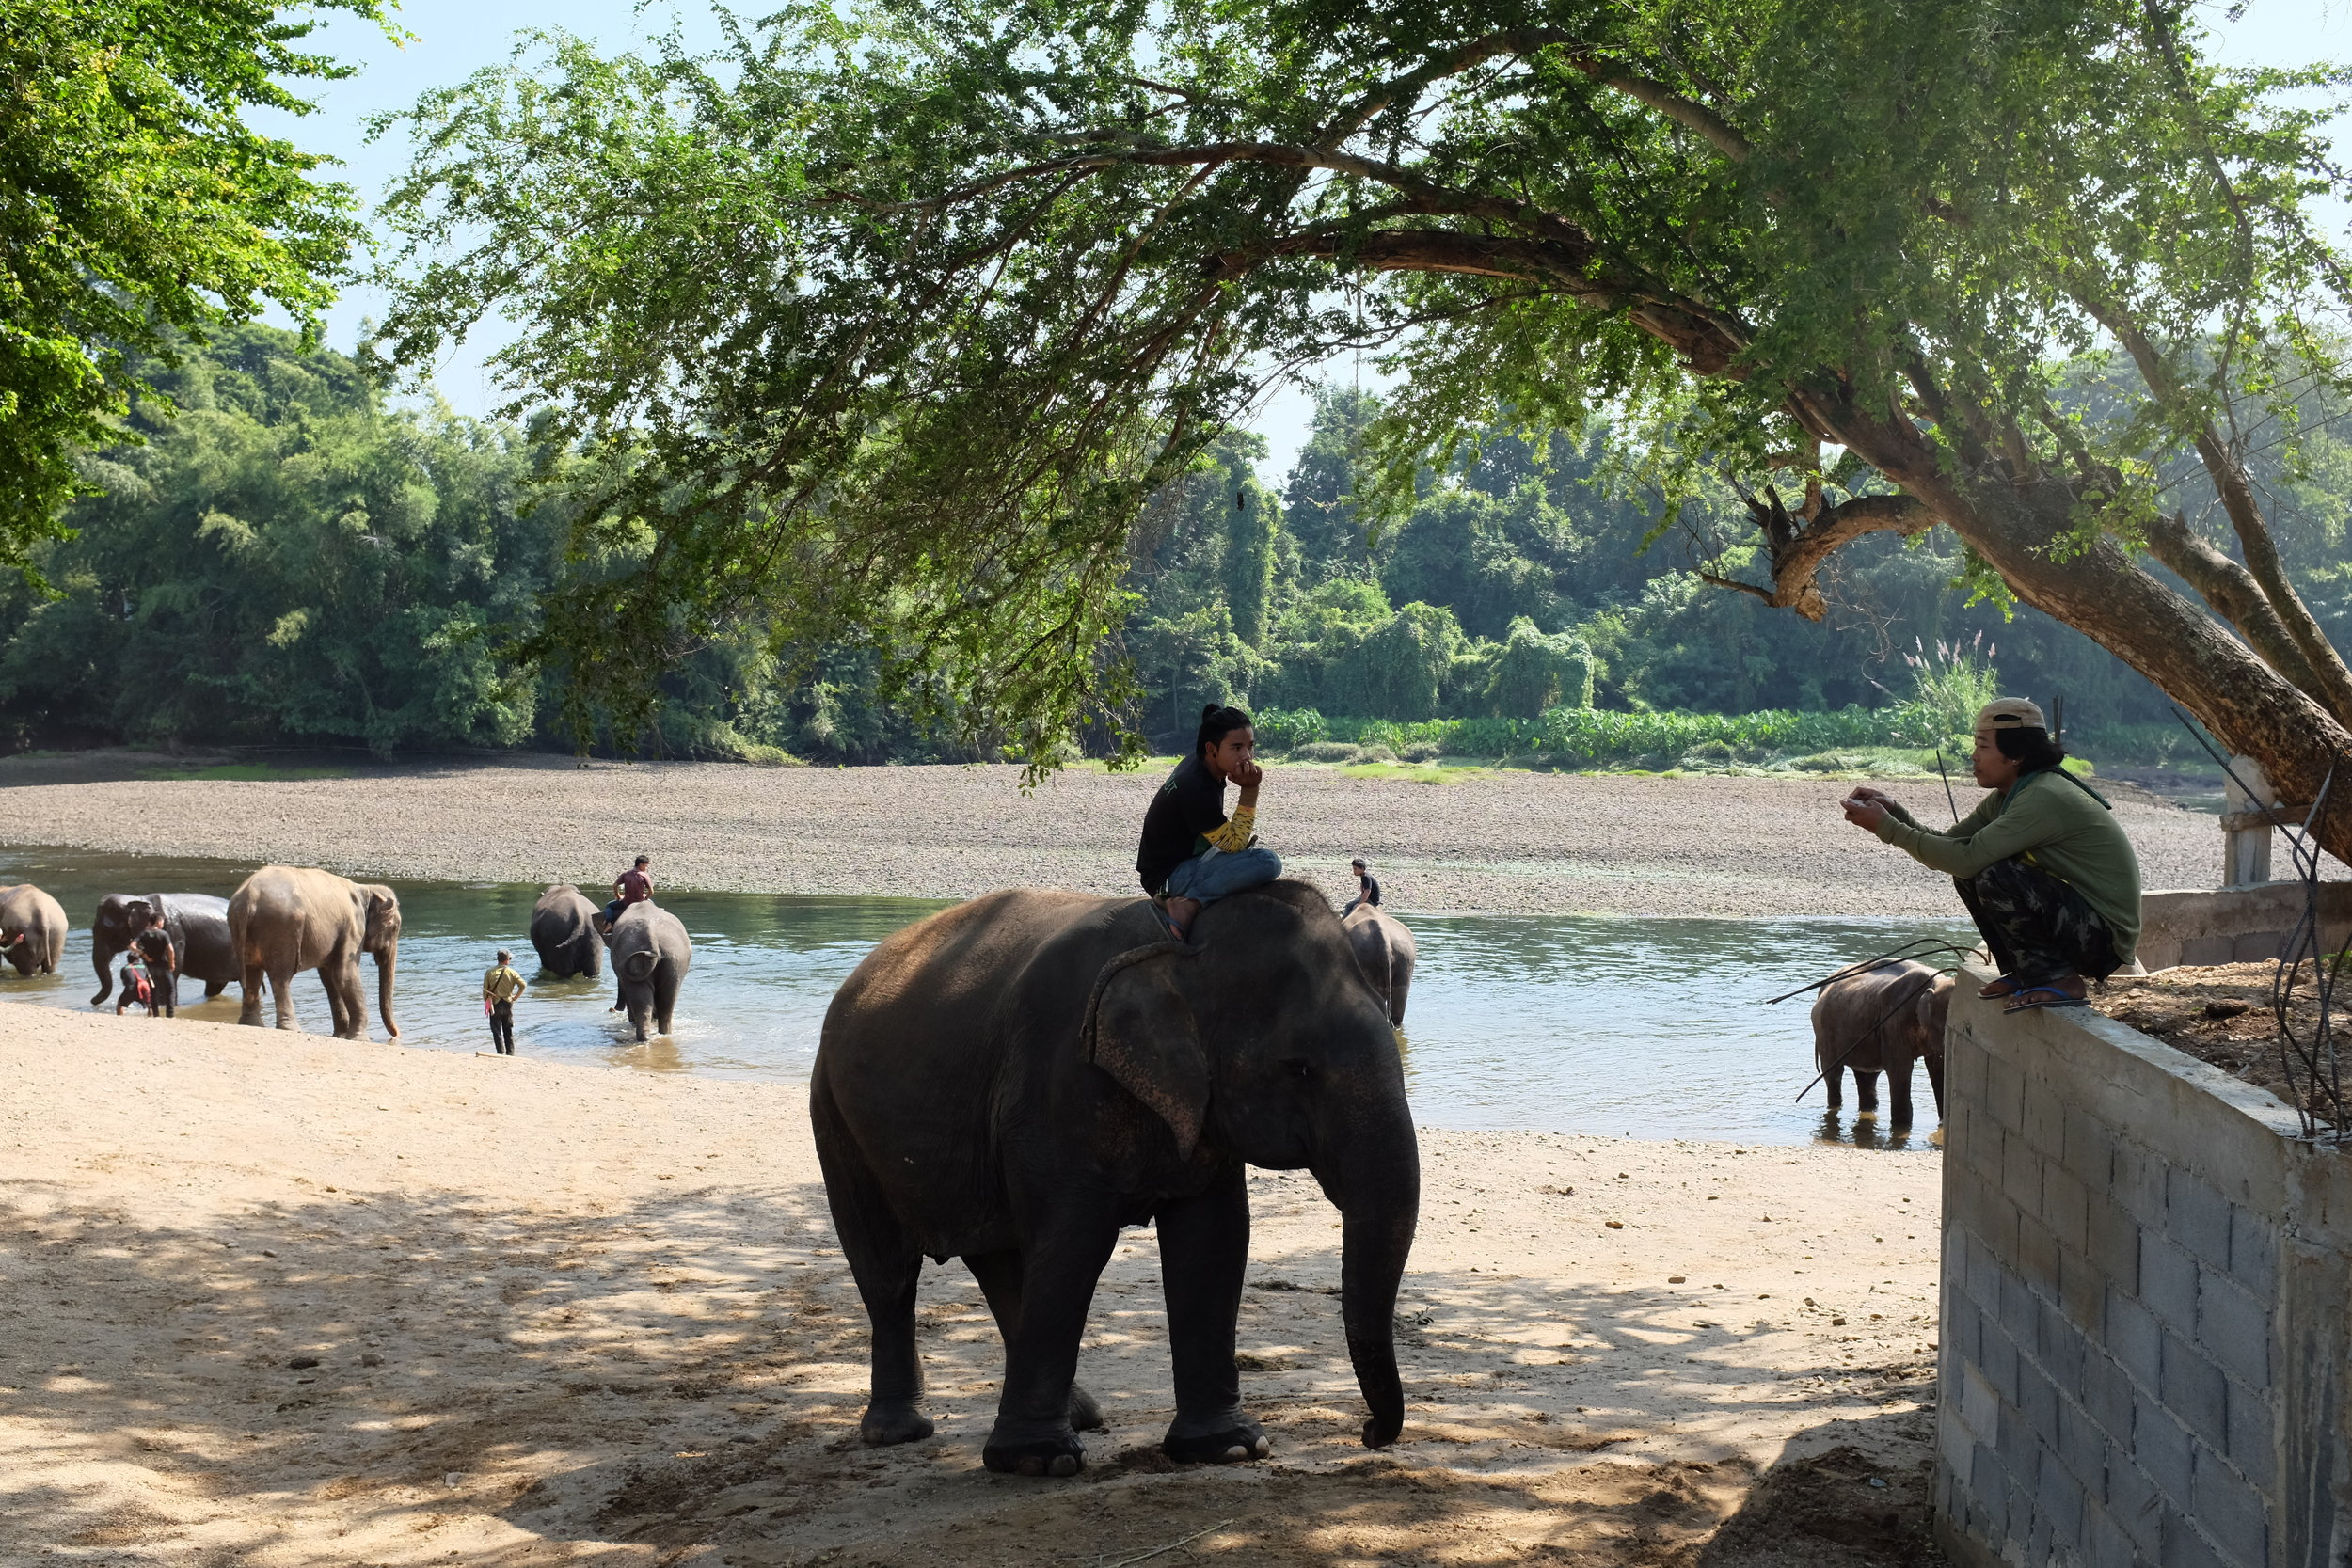 The mahouts walk their elephants to the river to bathe.